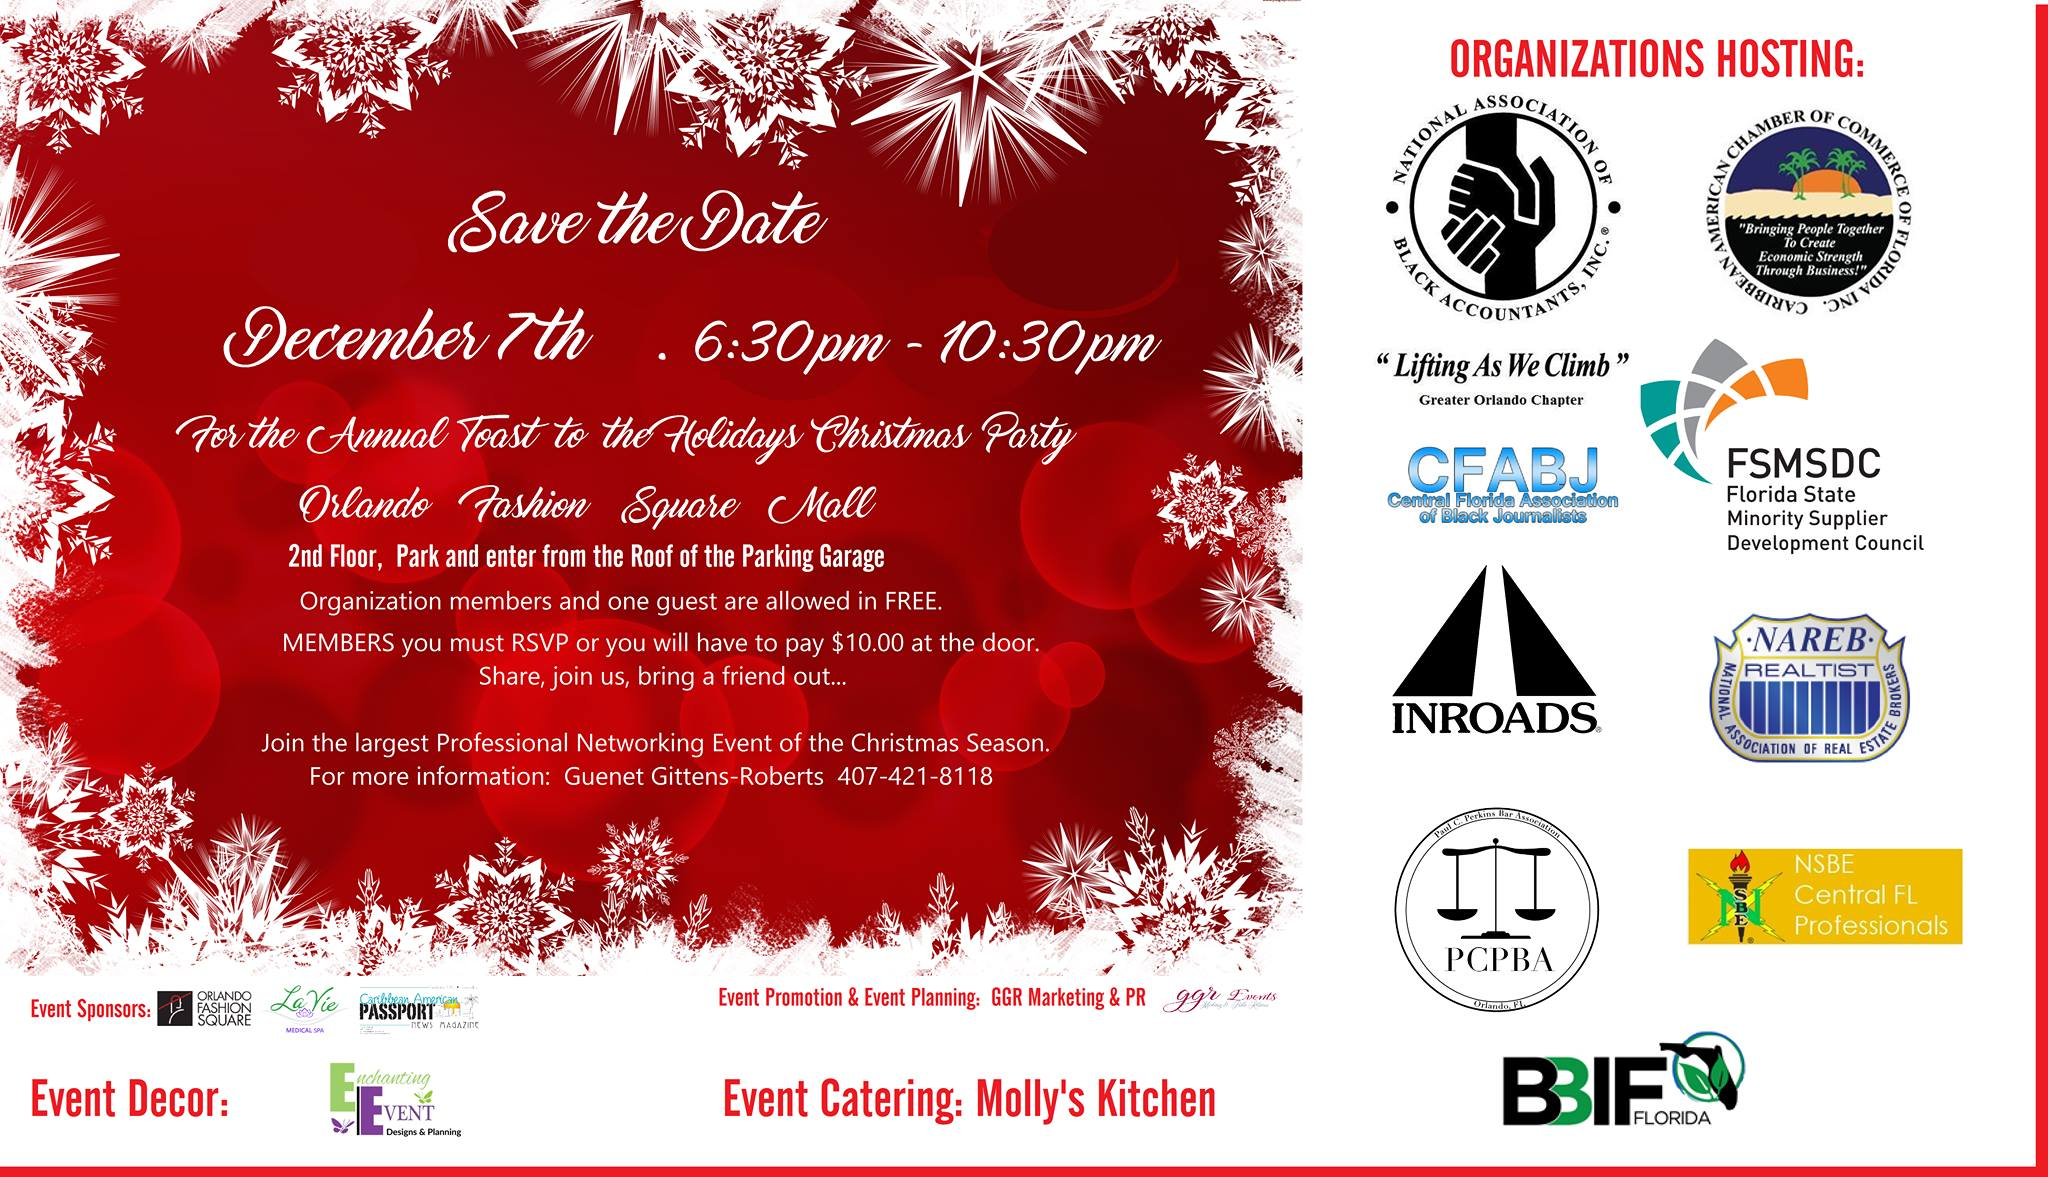 5th Annual Toast to the Holidays Christmas Party